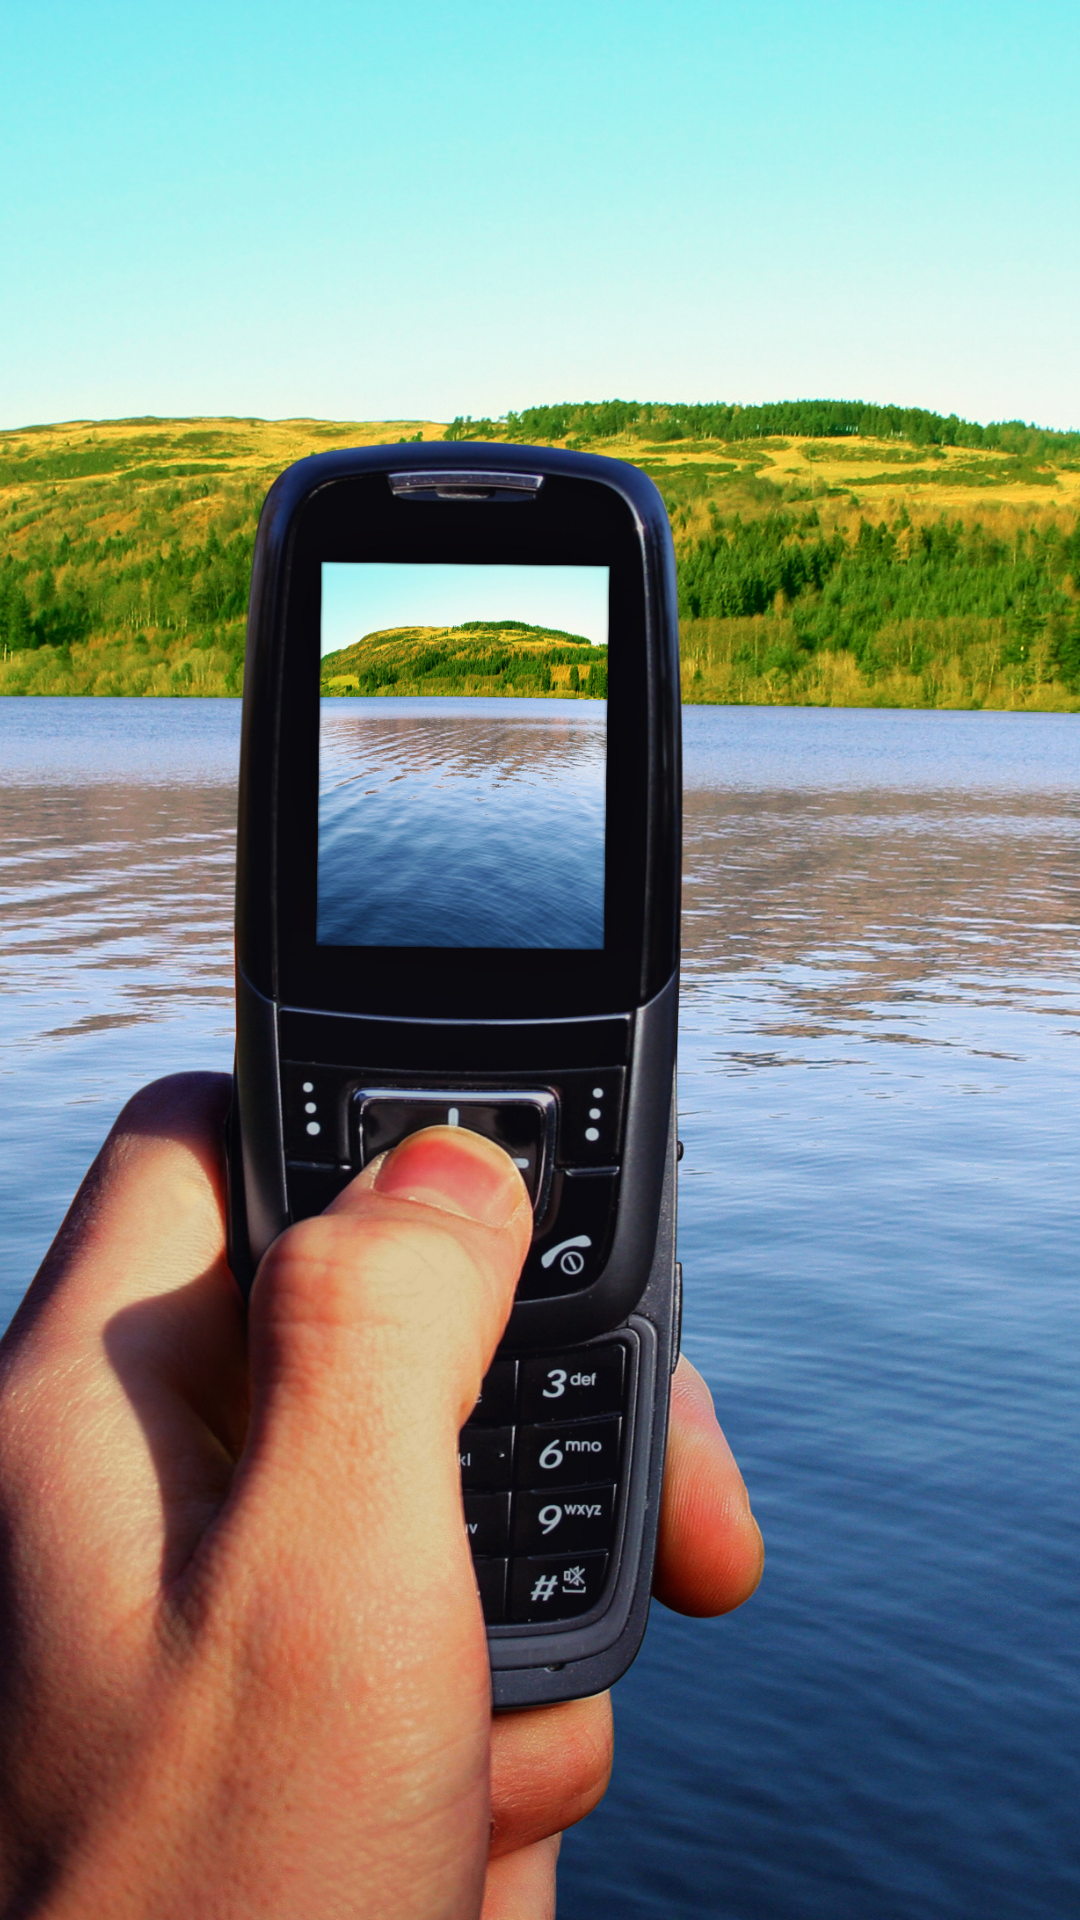 Photography: Getting The Most Out of Your Camera Phone